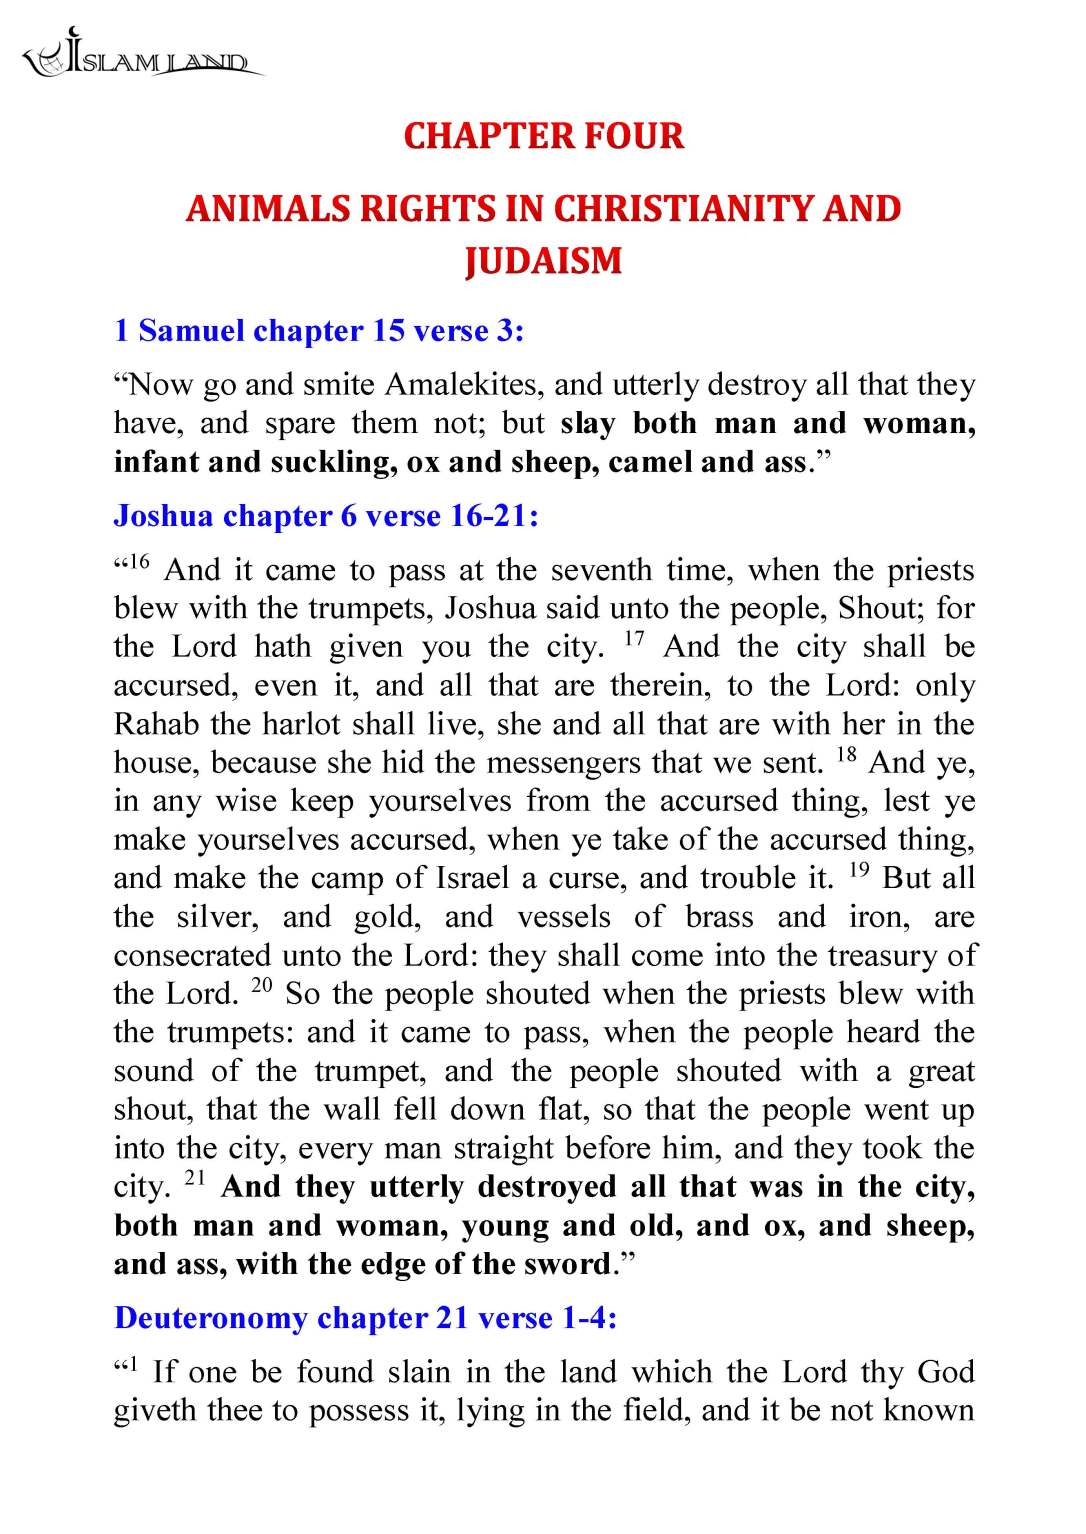 en_ANIMAL_RIGHTS_IN_ISLAMIC_CHRISTIAN_AND_JEWISH_SHARIA_LAW_Page_26